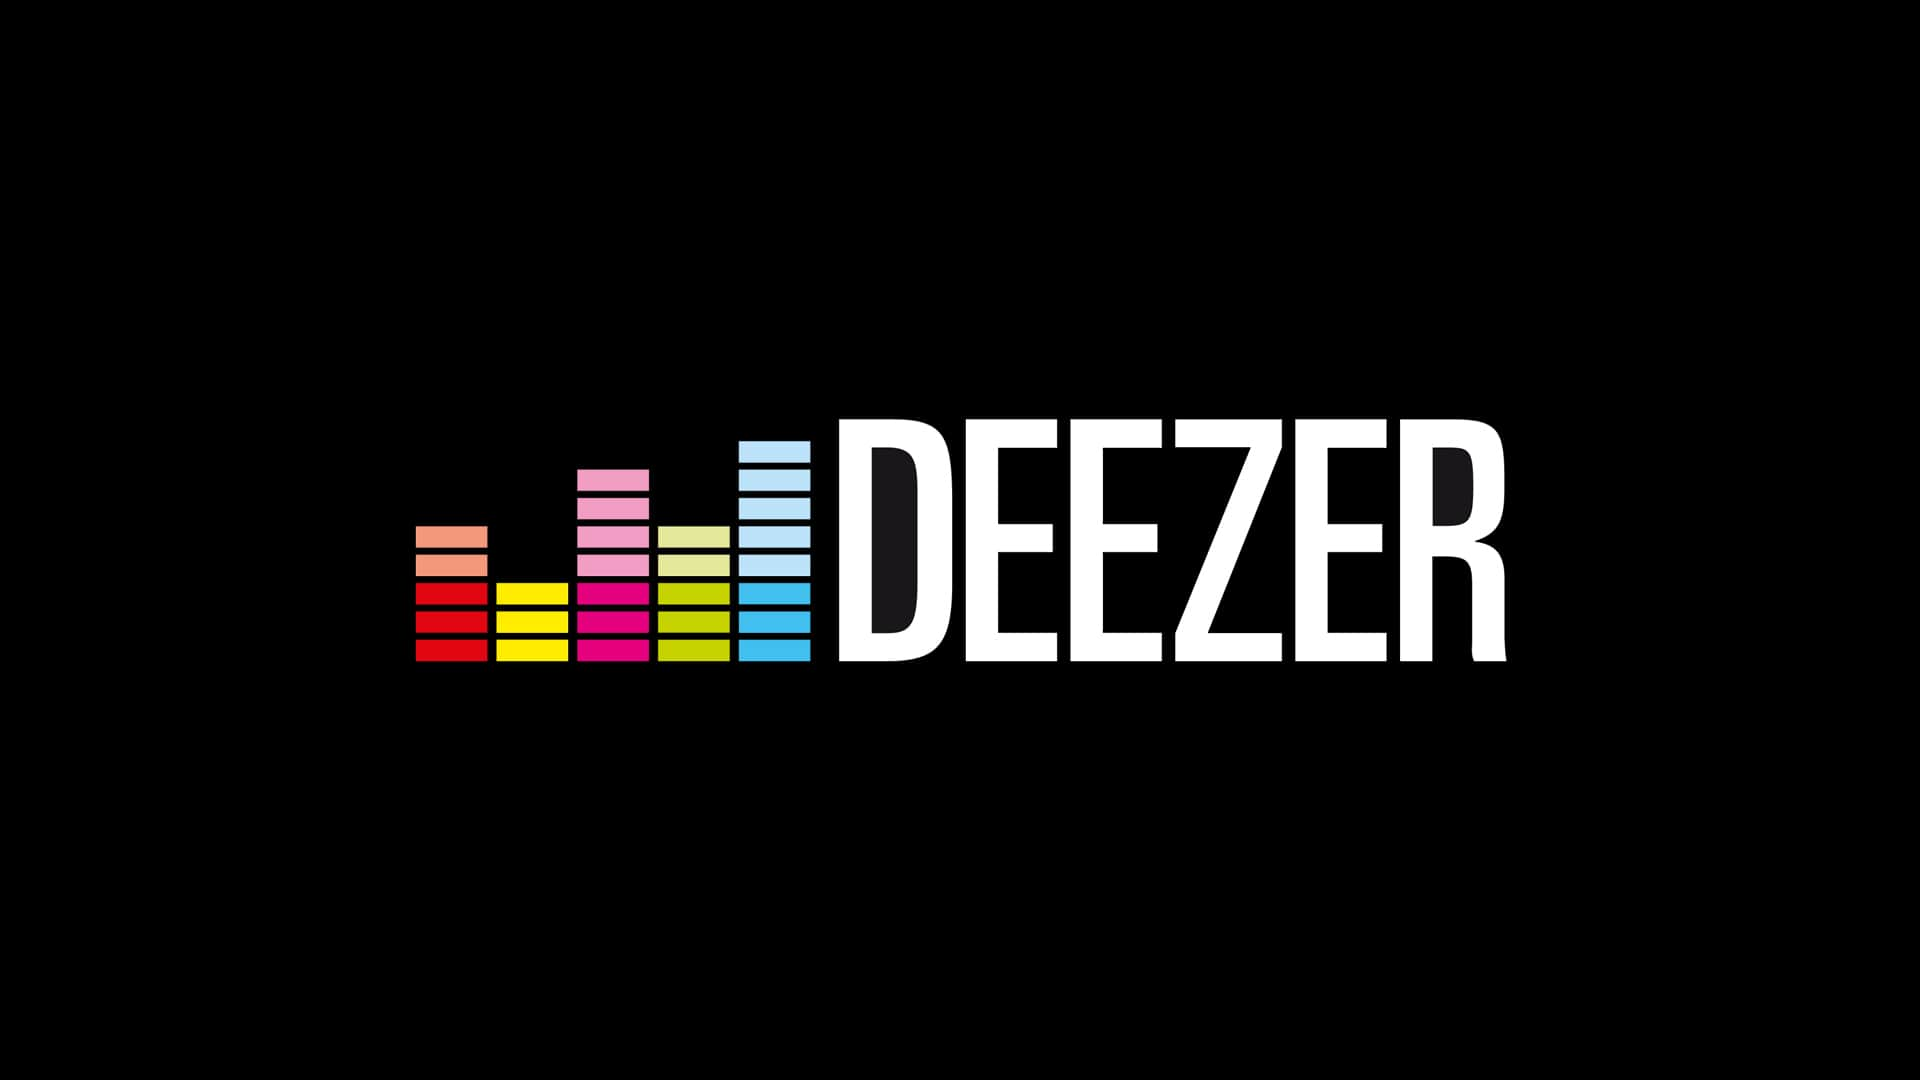 DEEZER : L'application arrive !